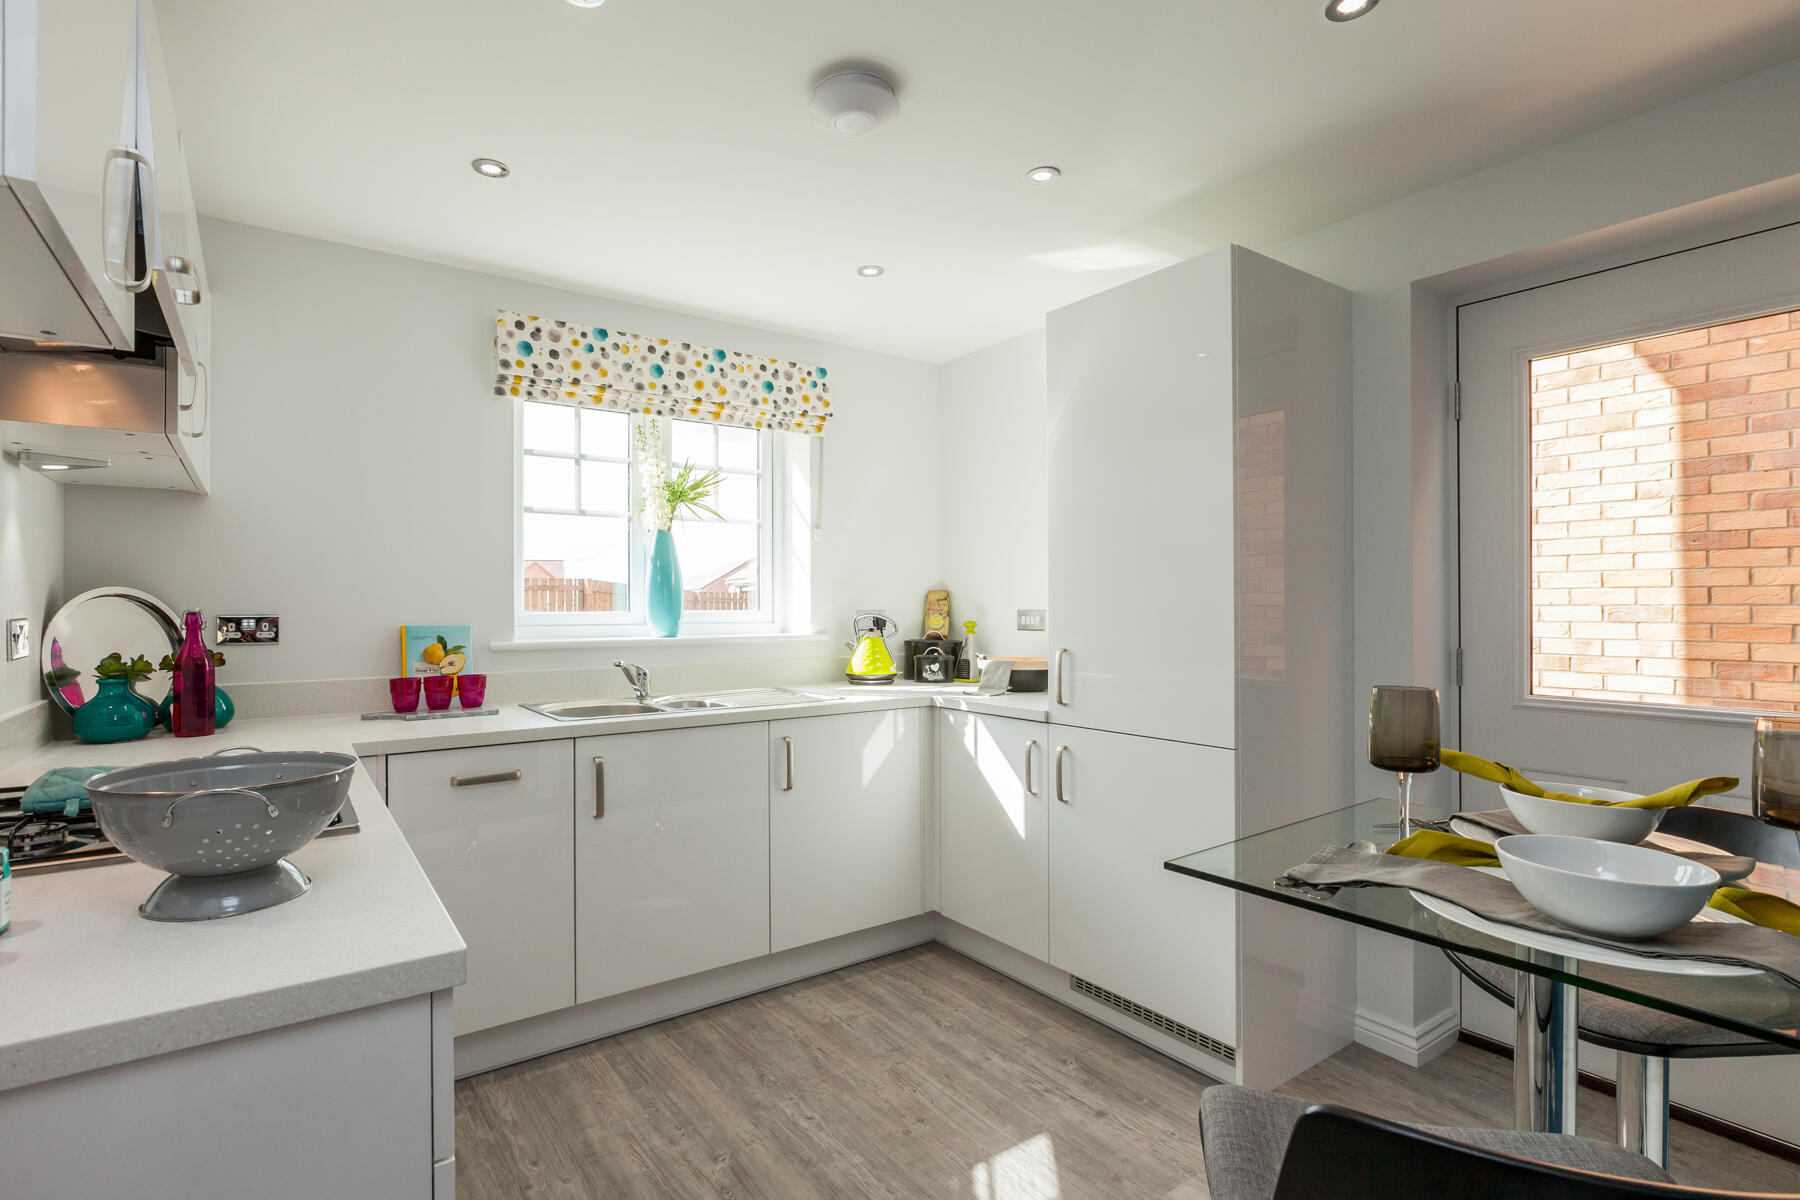 TW NY_Elderwood Park_PD32_Aldenham_Kitchen 1_1800x1200